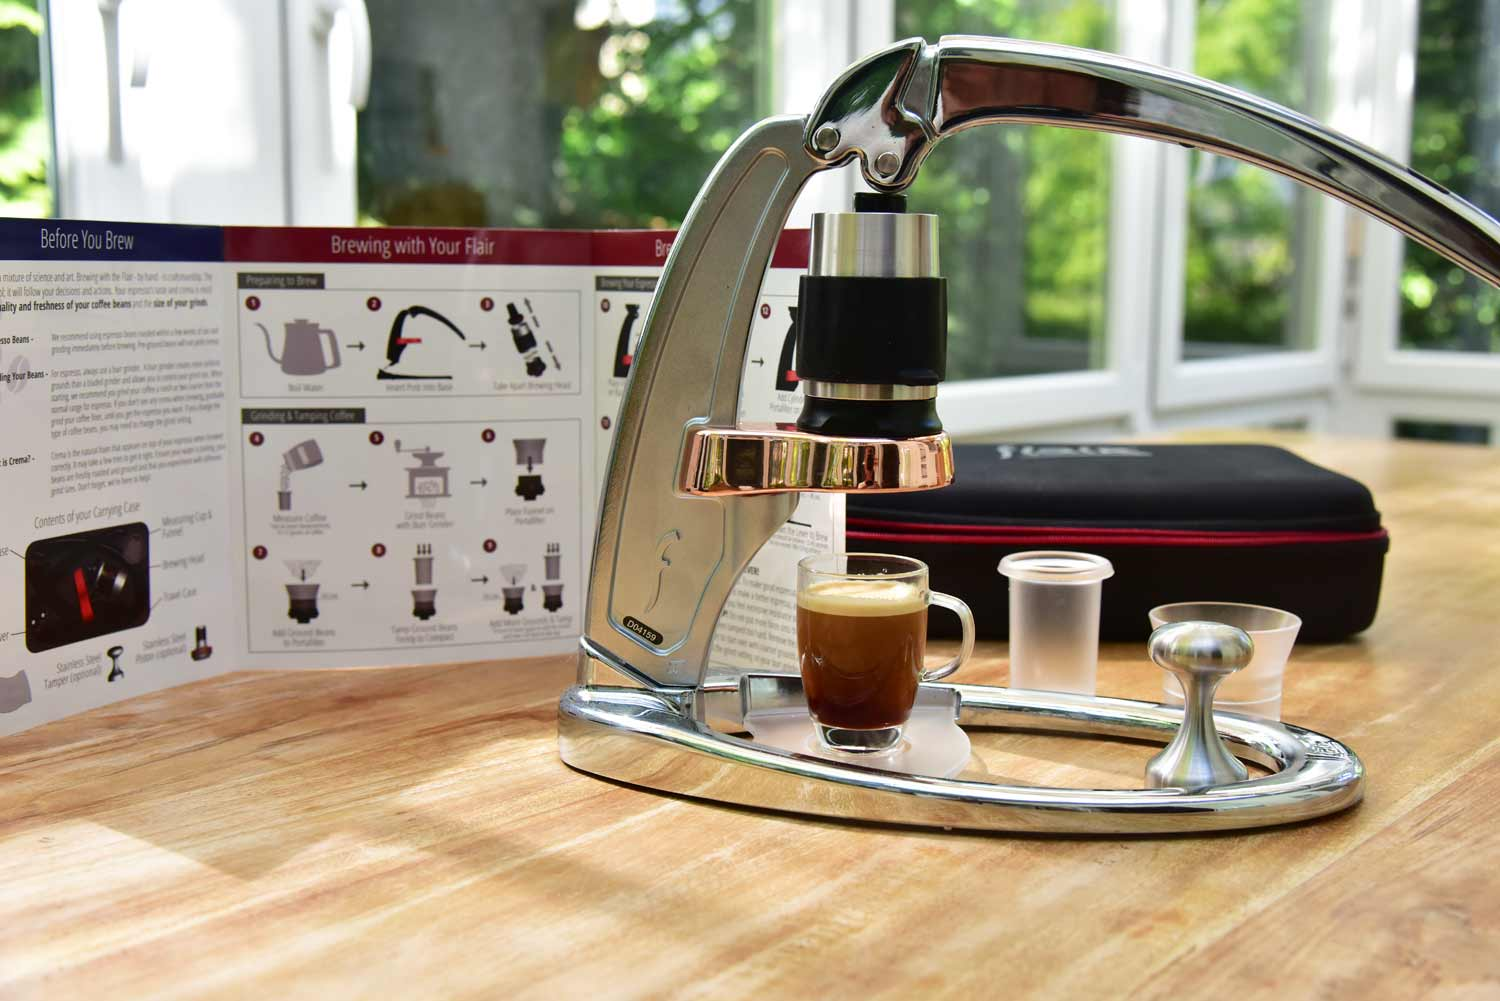 flair espresso maker test kaffeevollautomat berater. Black Bedroom Furniture Sets. Home Design Ideas